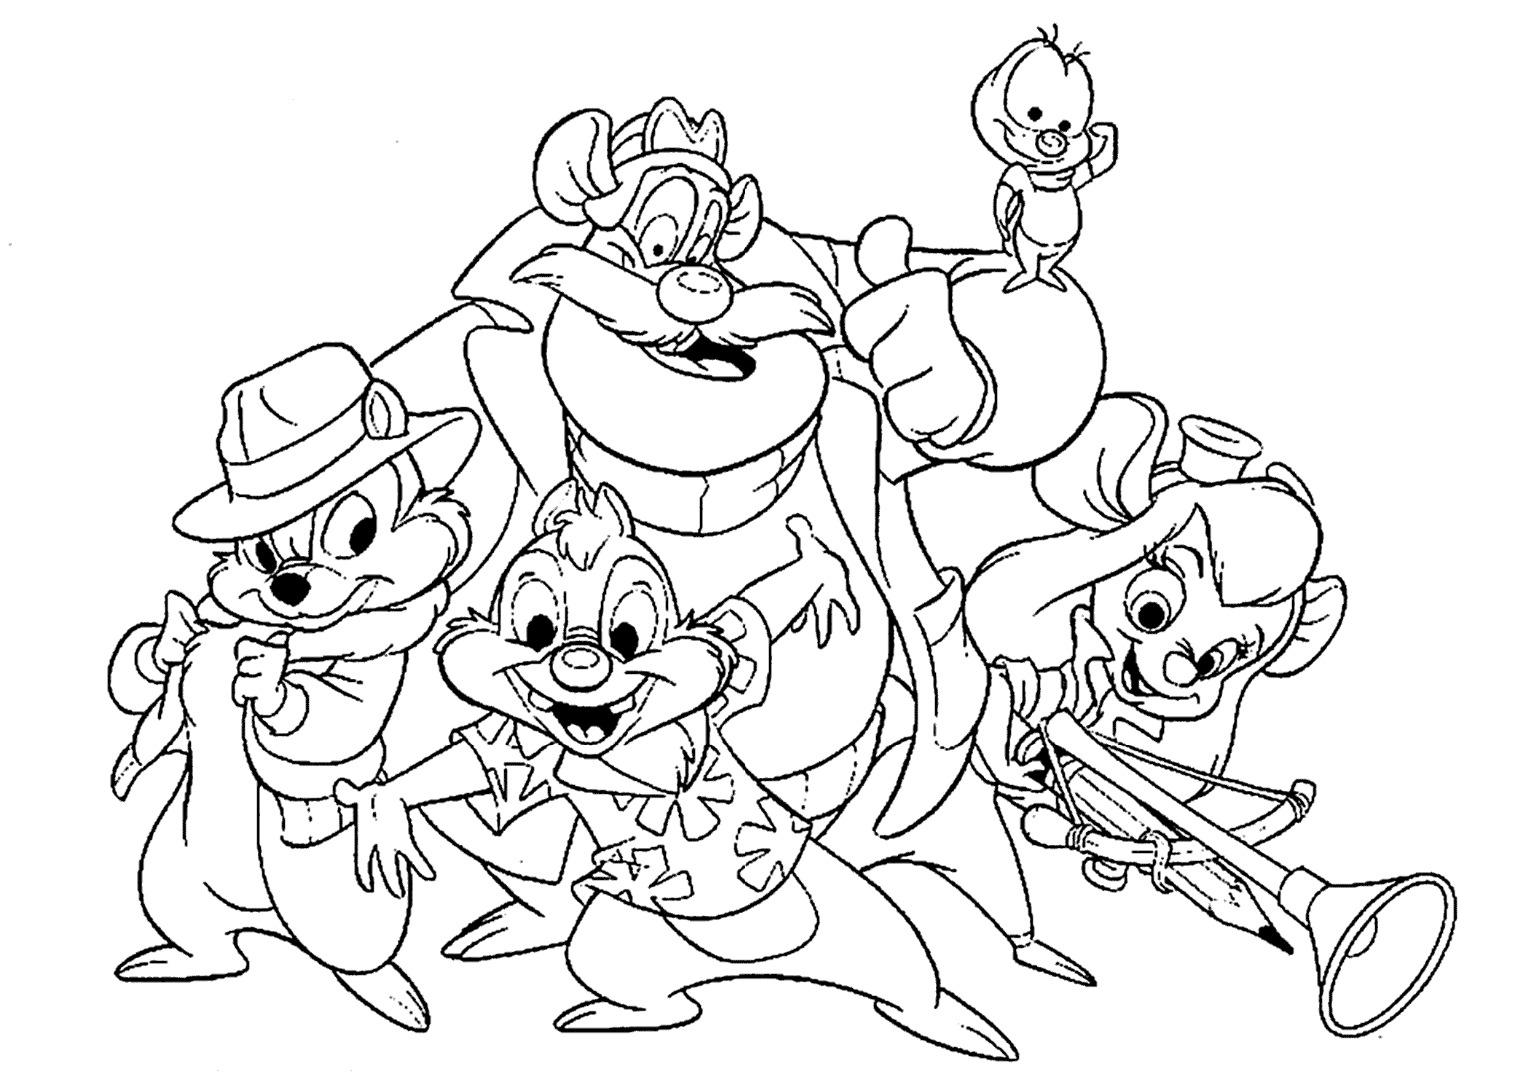 Chip and dale coloring pages